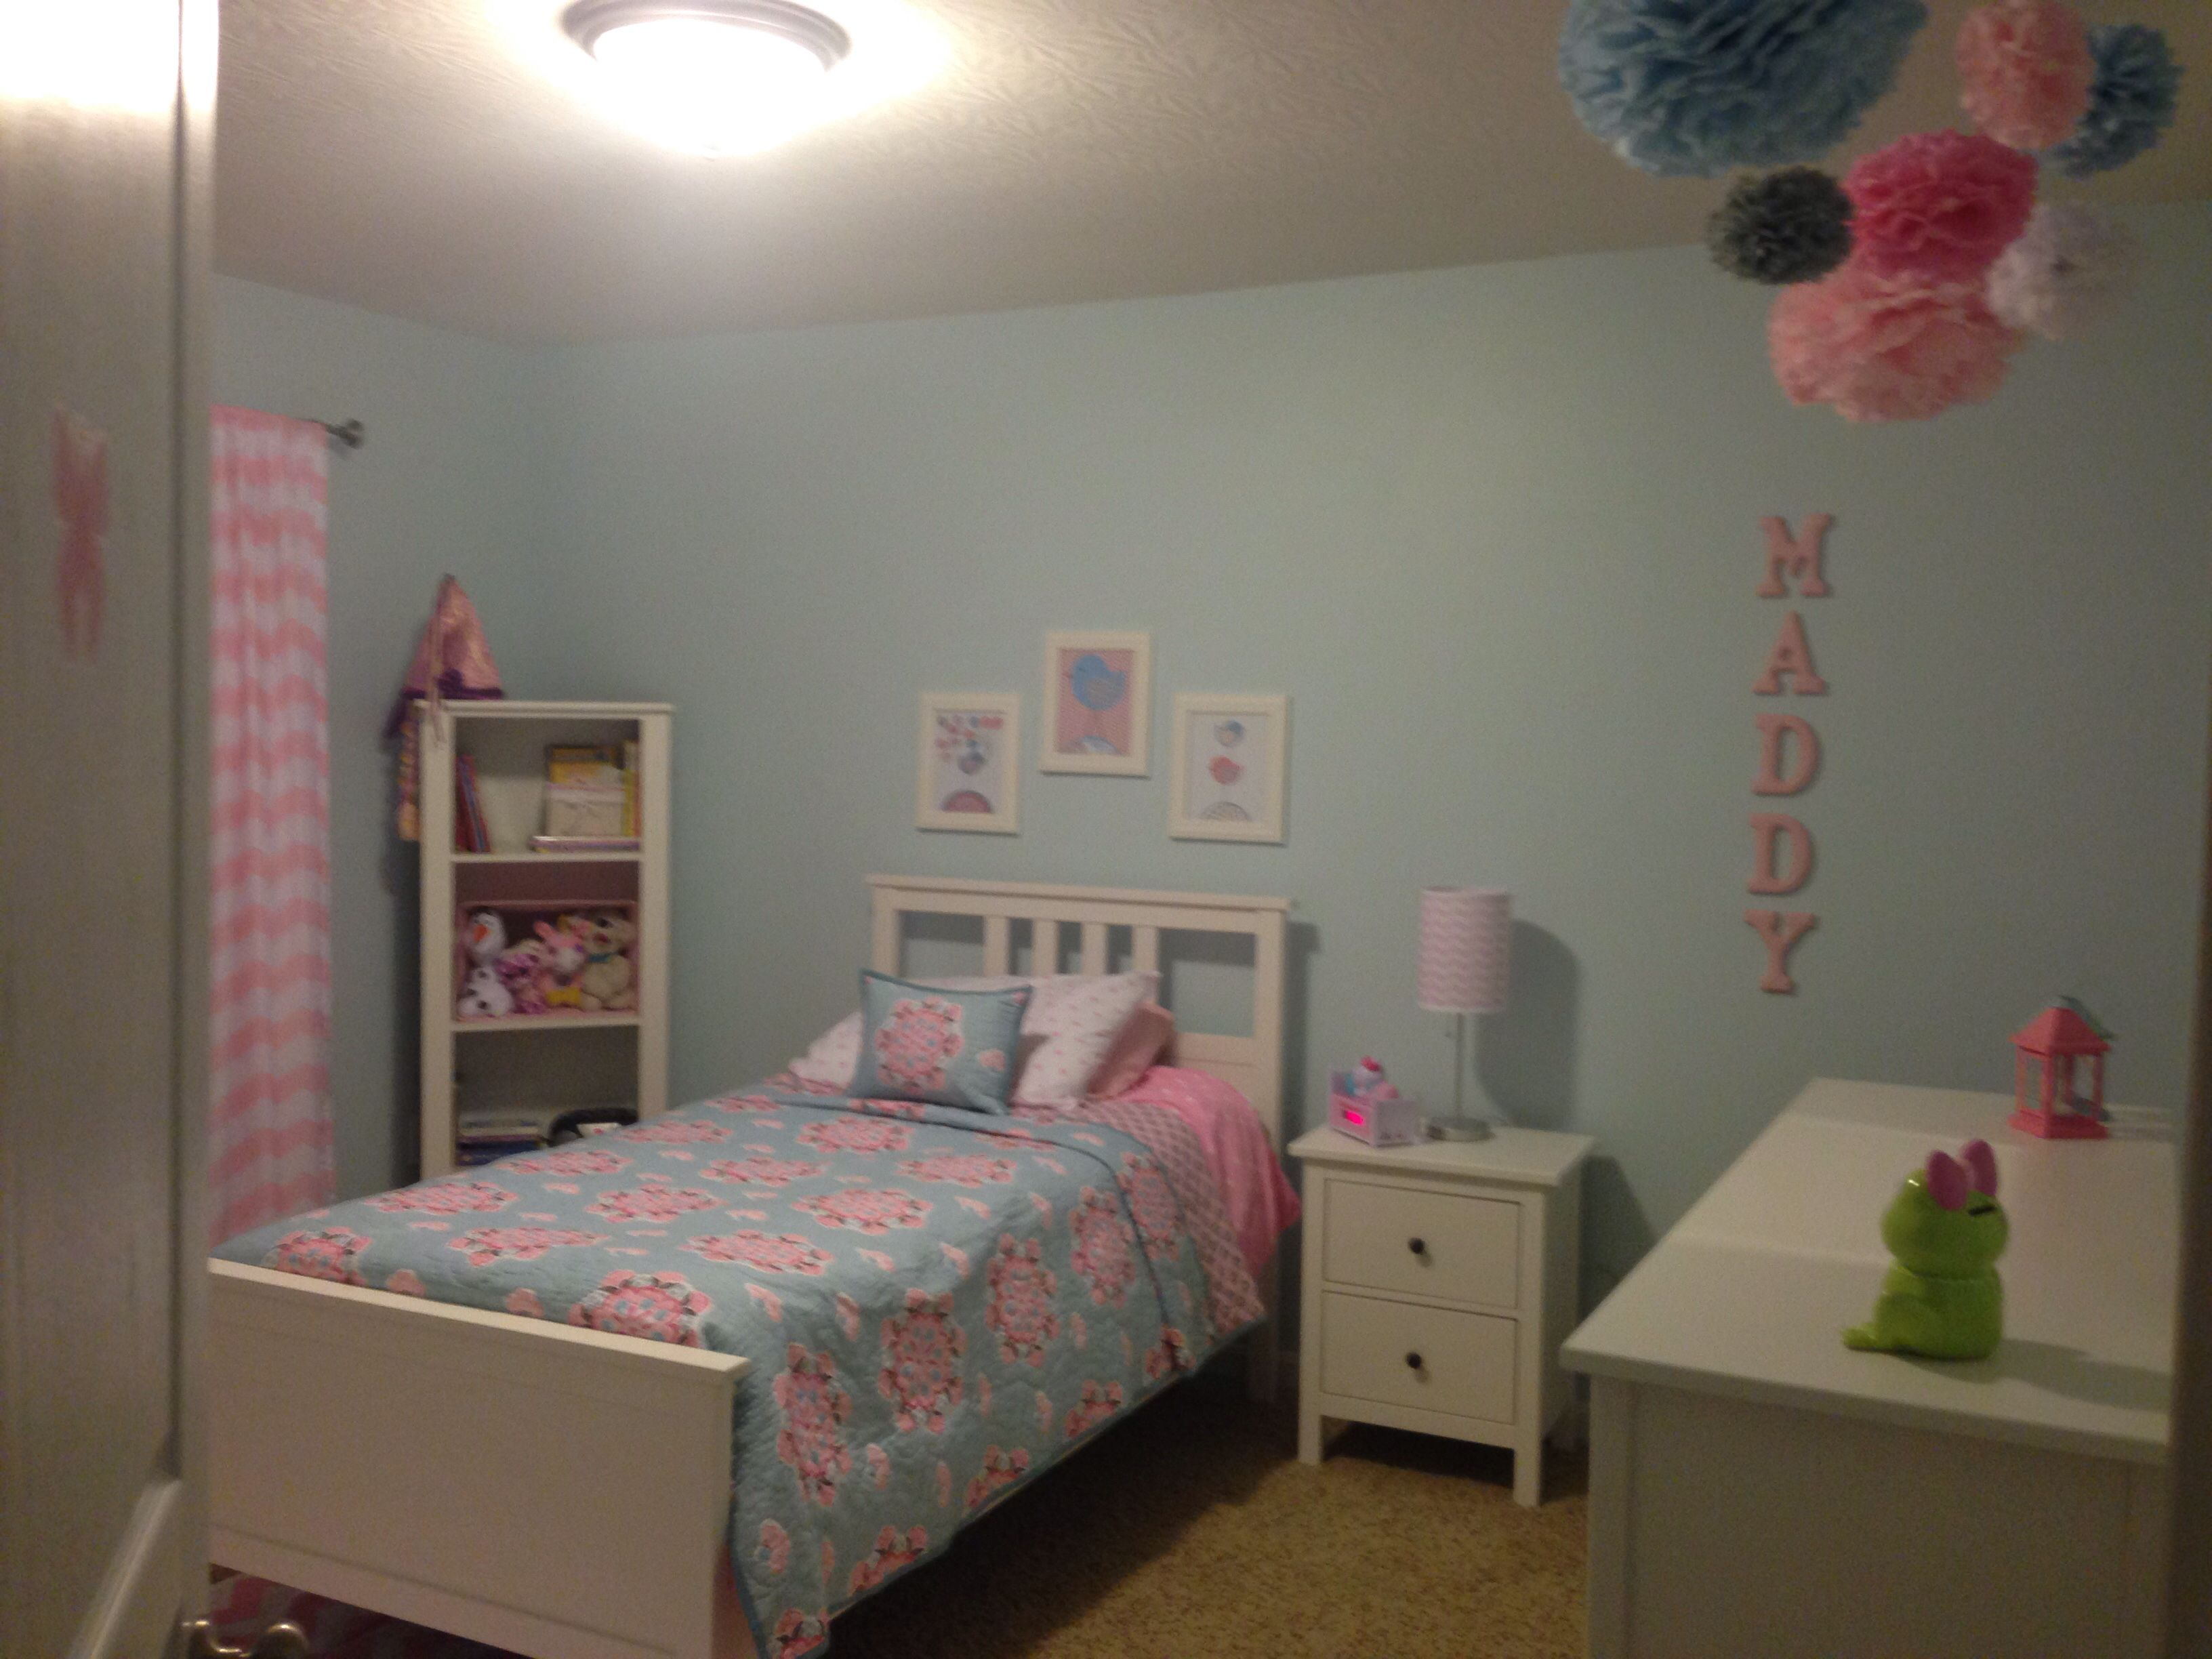 Pottery barn silk curtains - Maddy S Completed Light Blue Pink Big Girl Room Pottery Barn Brooklyn Bedding Paper